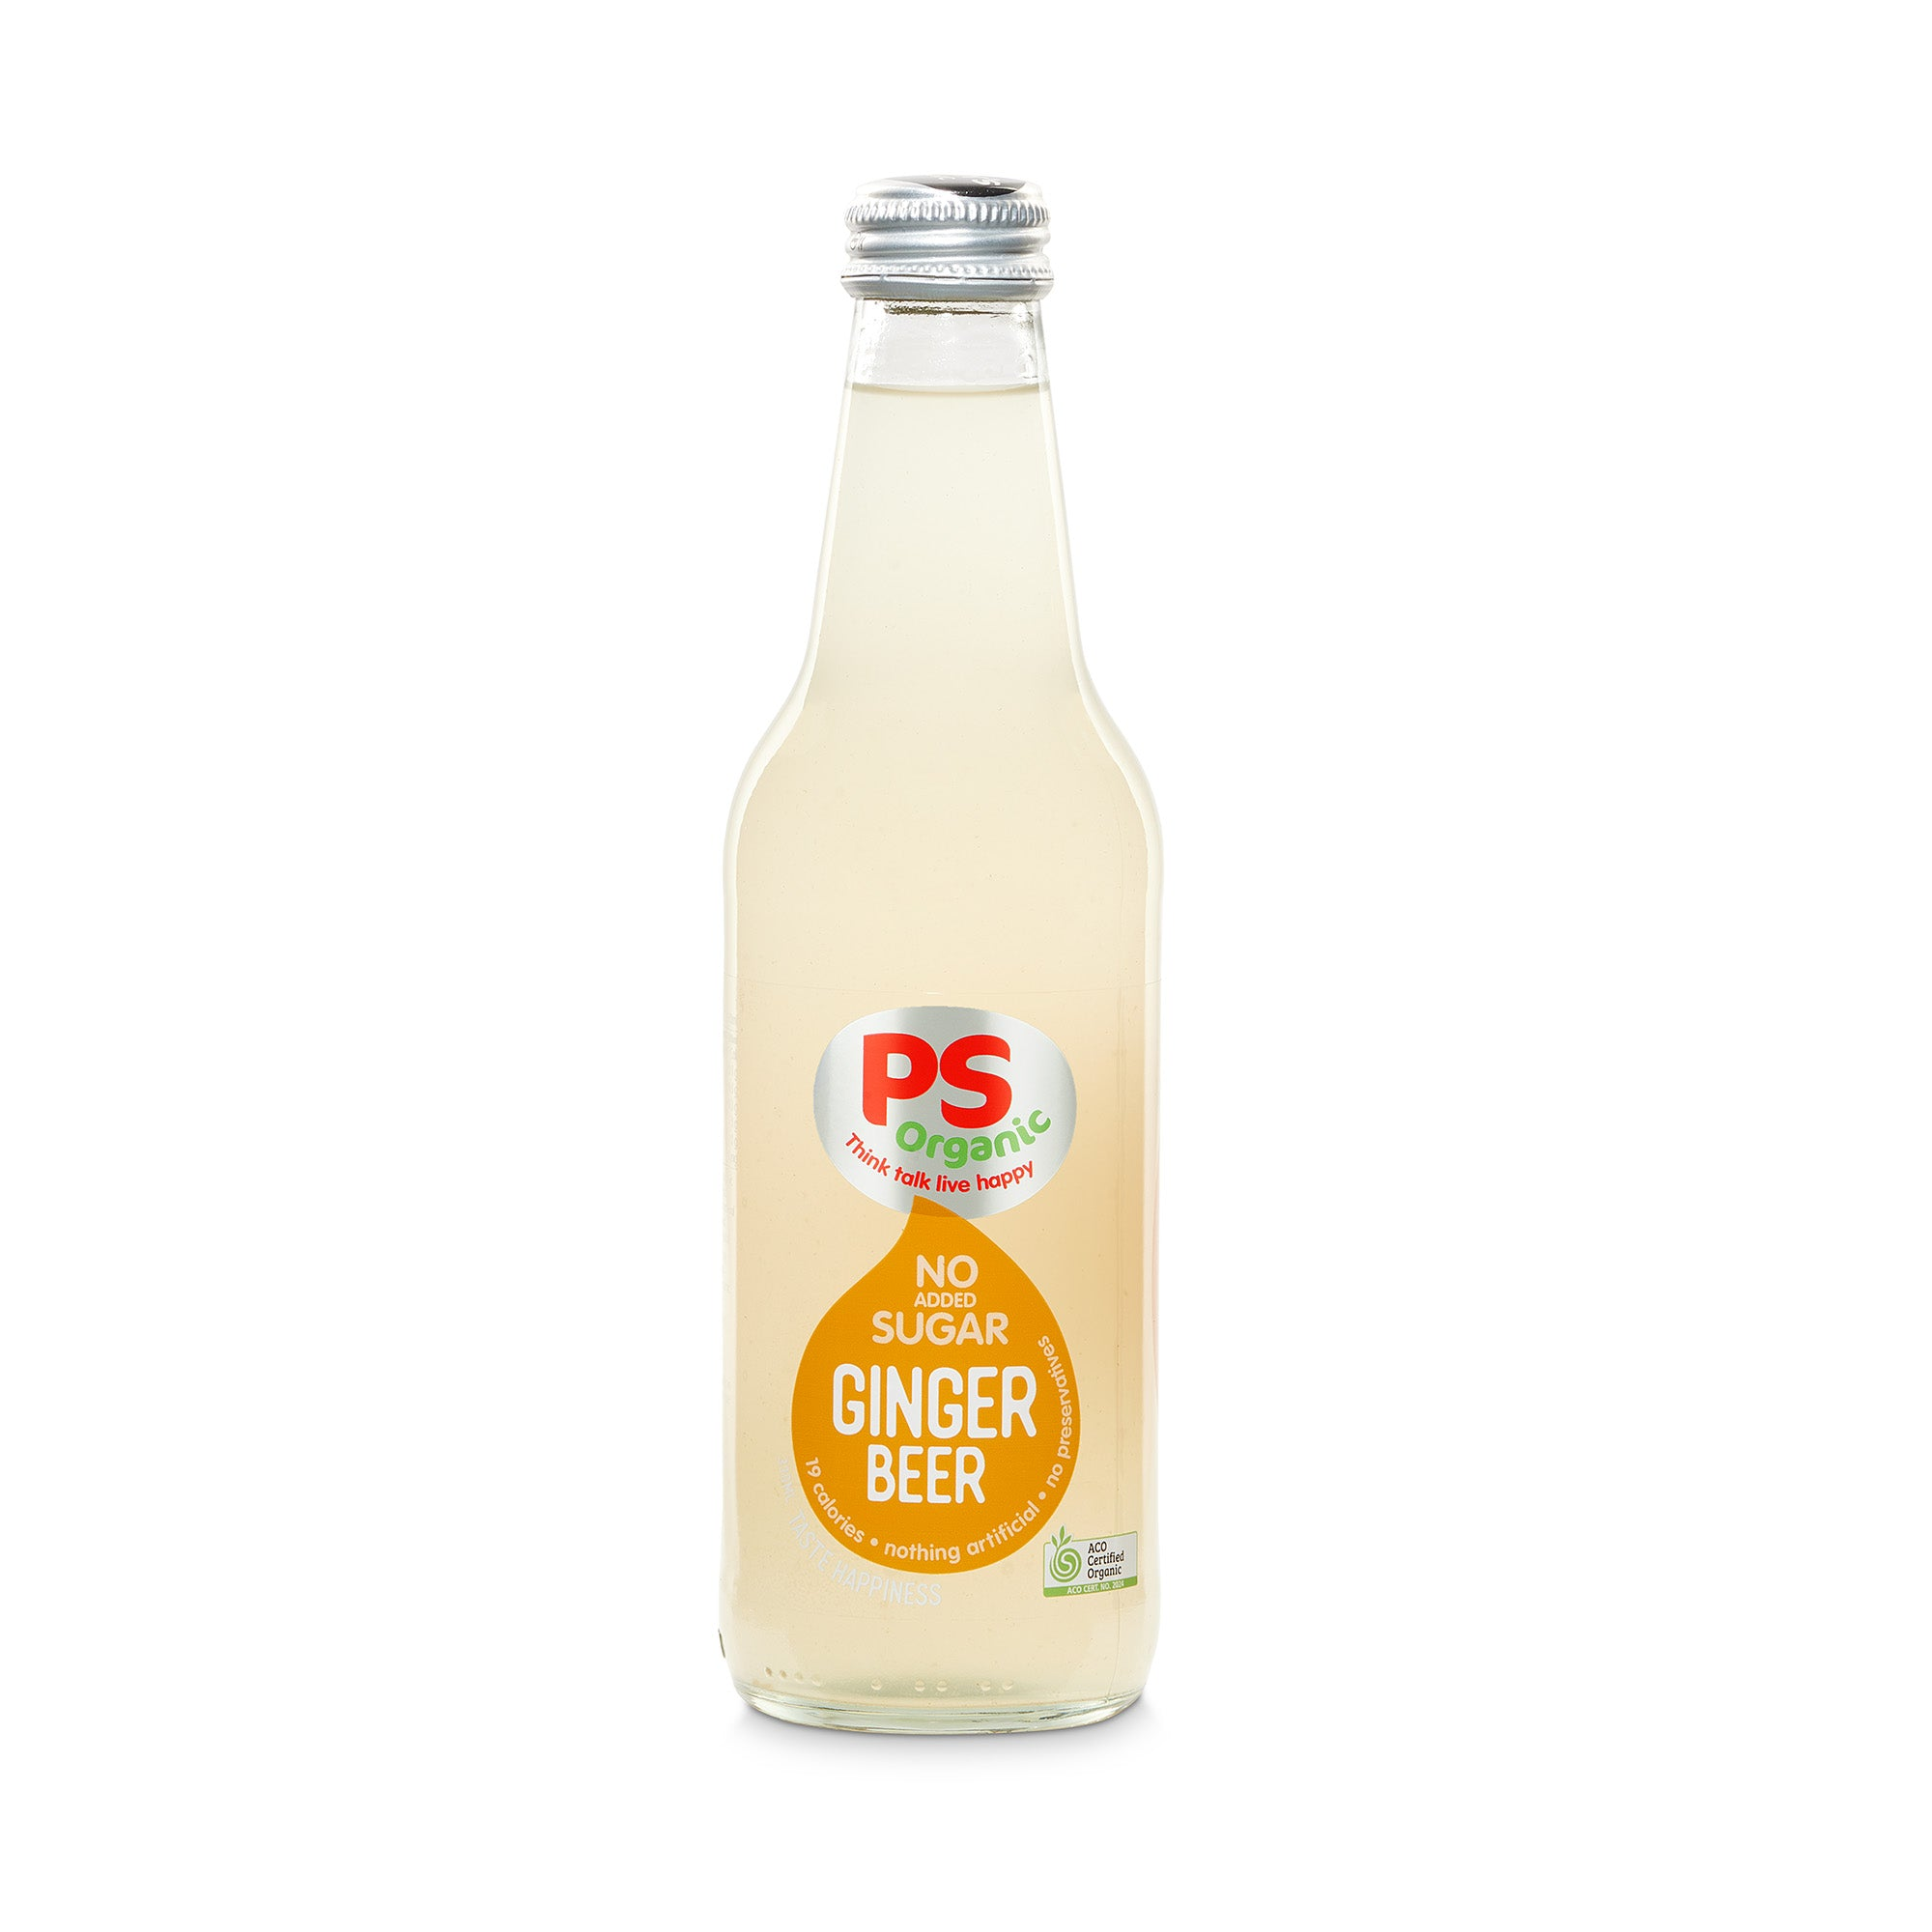 No Sugar Ginger Beer 330ml